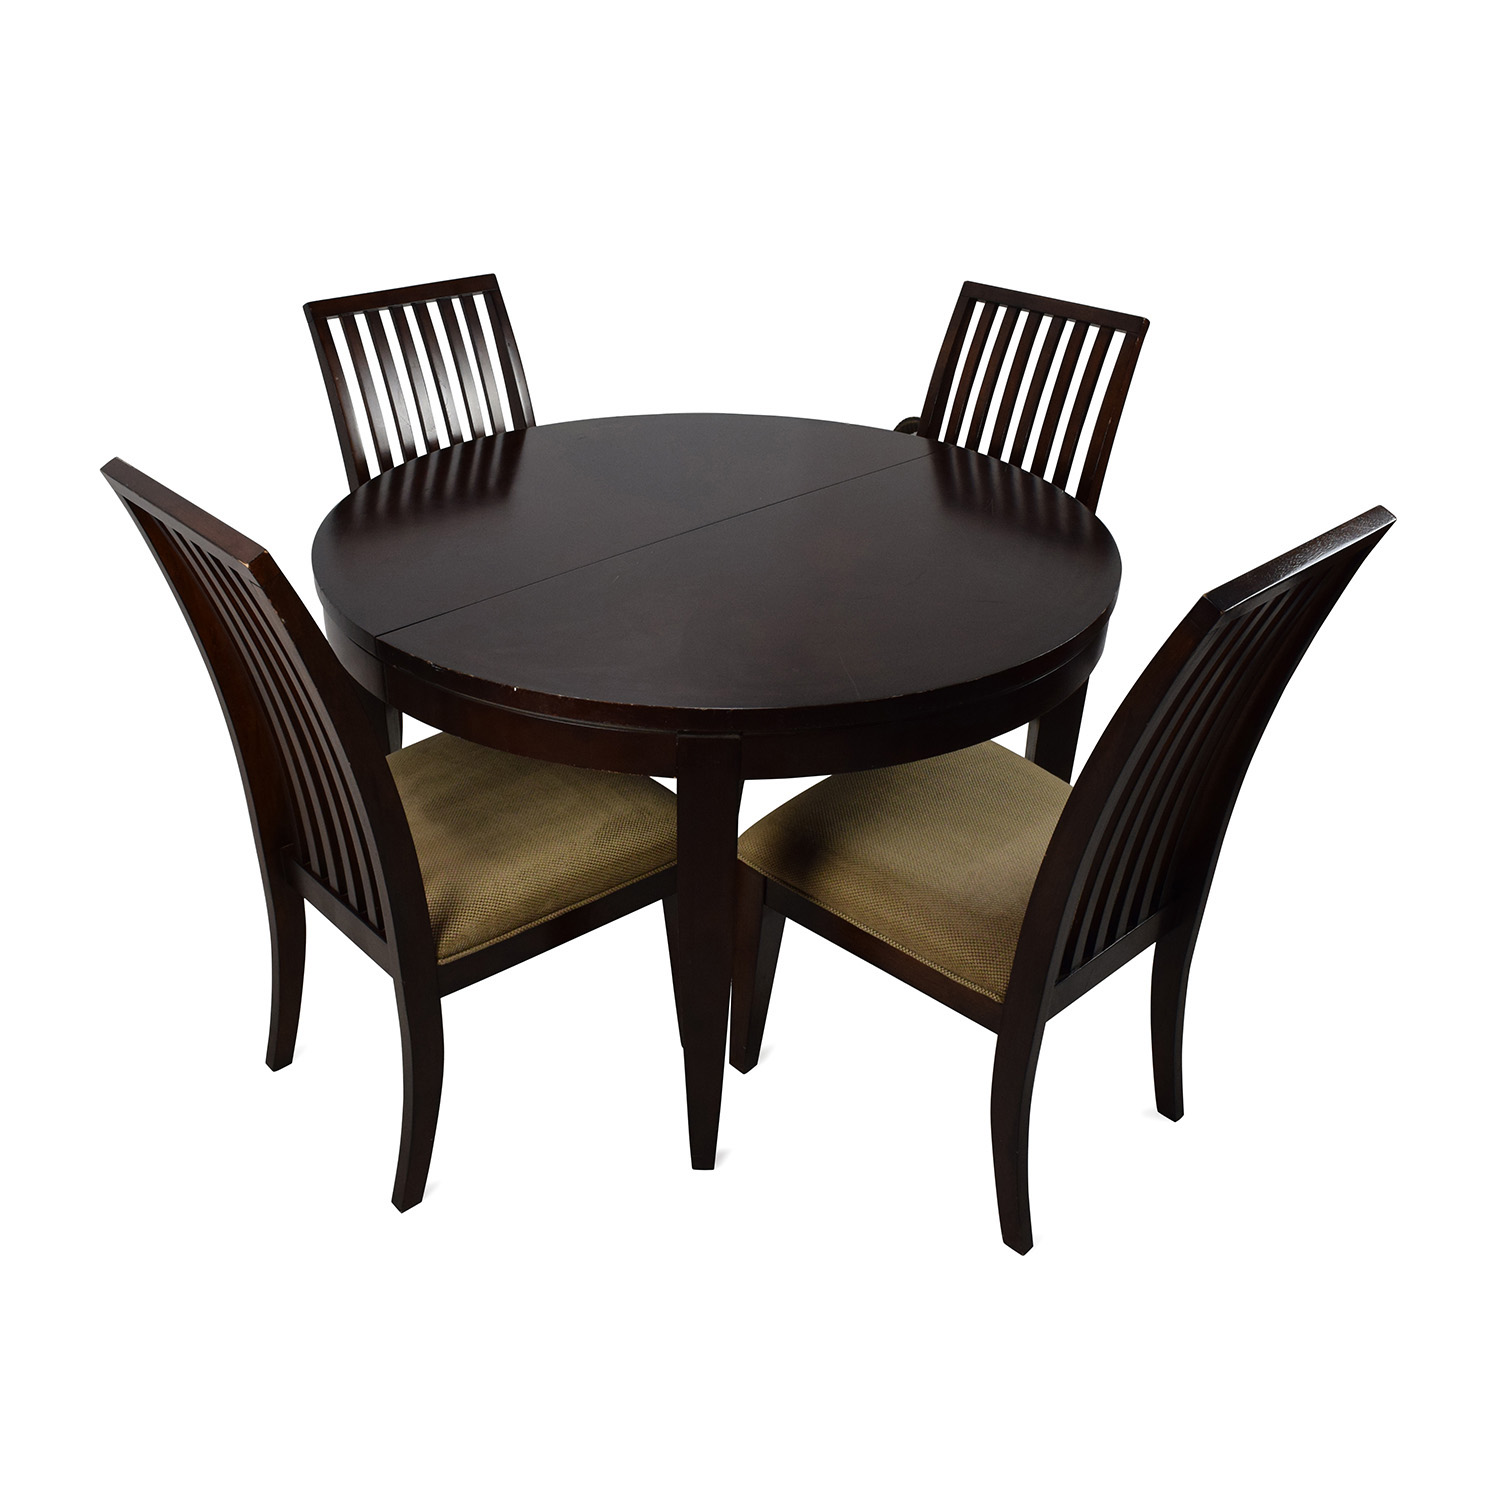 macys dining chairs chair cover hire buckinghamshire 75 off macy 39s bradford extendable table